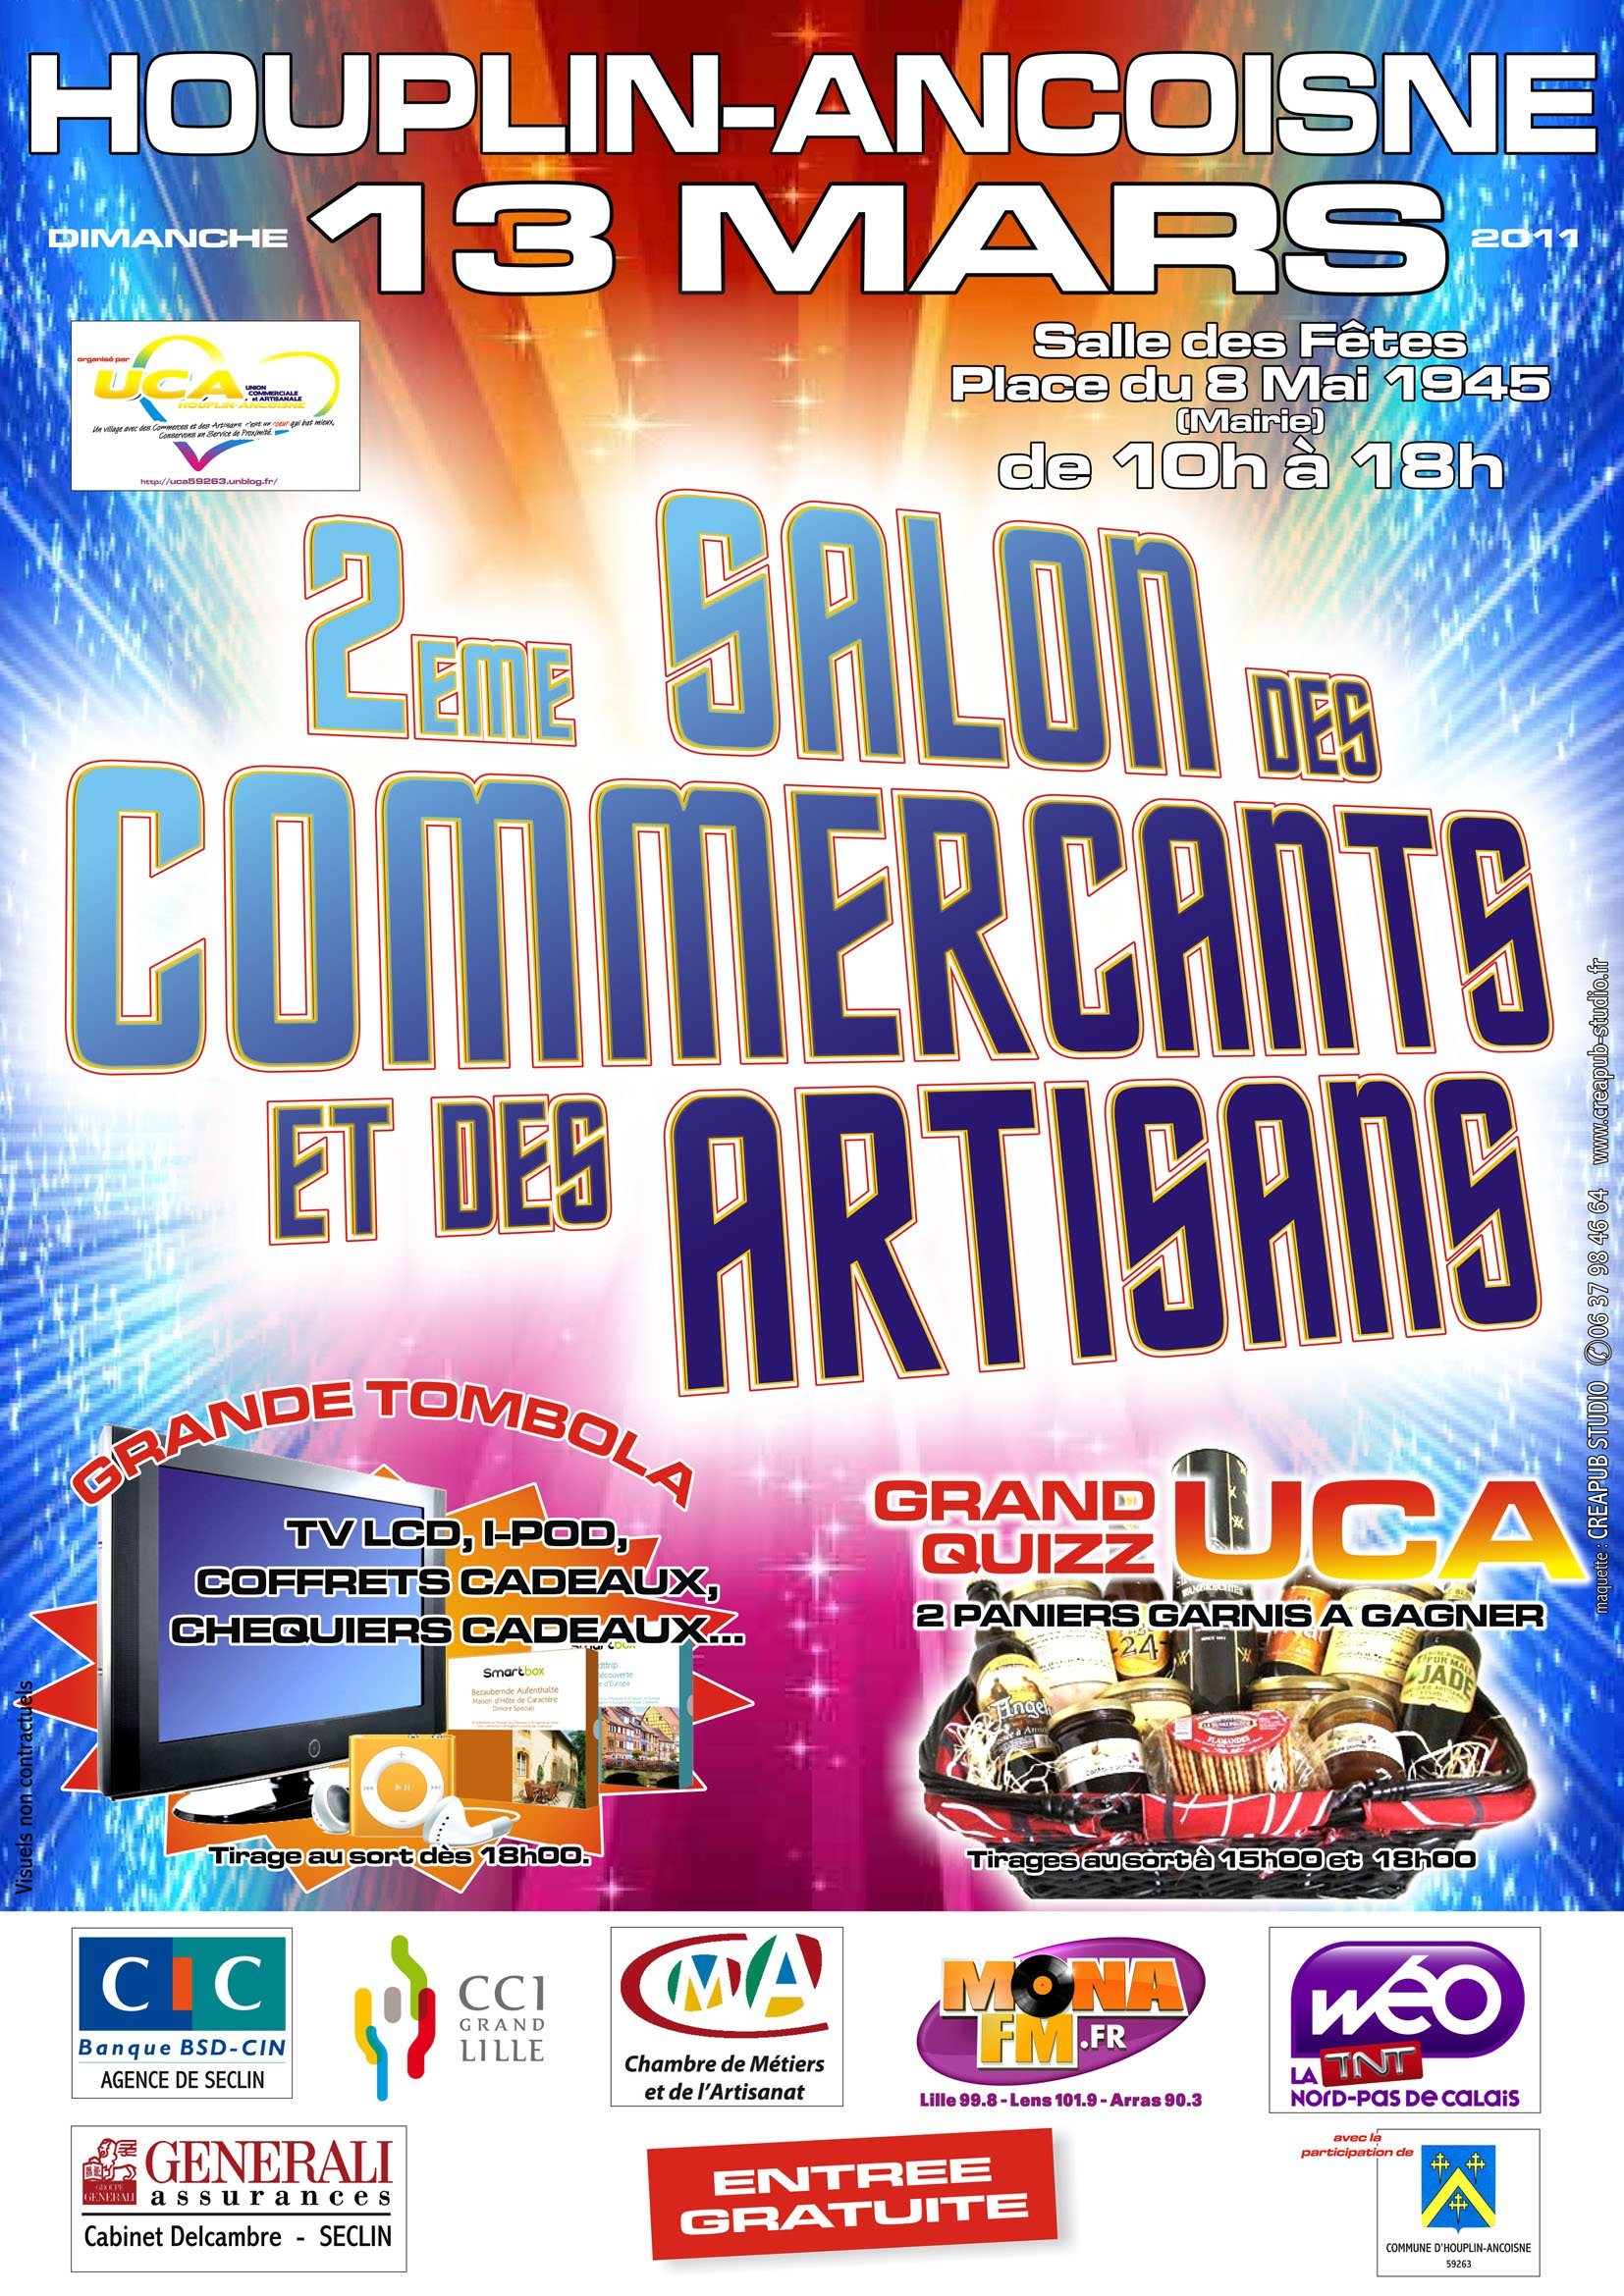 Union commerciale et artisanale union commerciale et for Salon artisanal